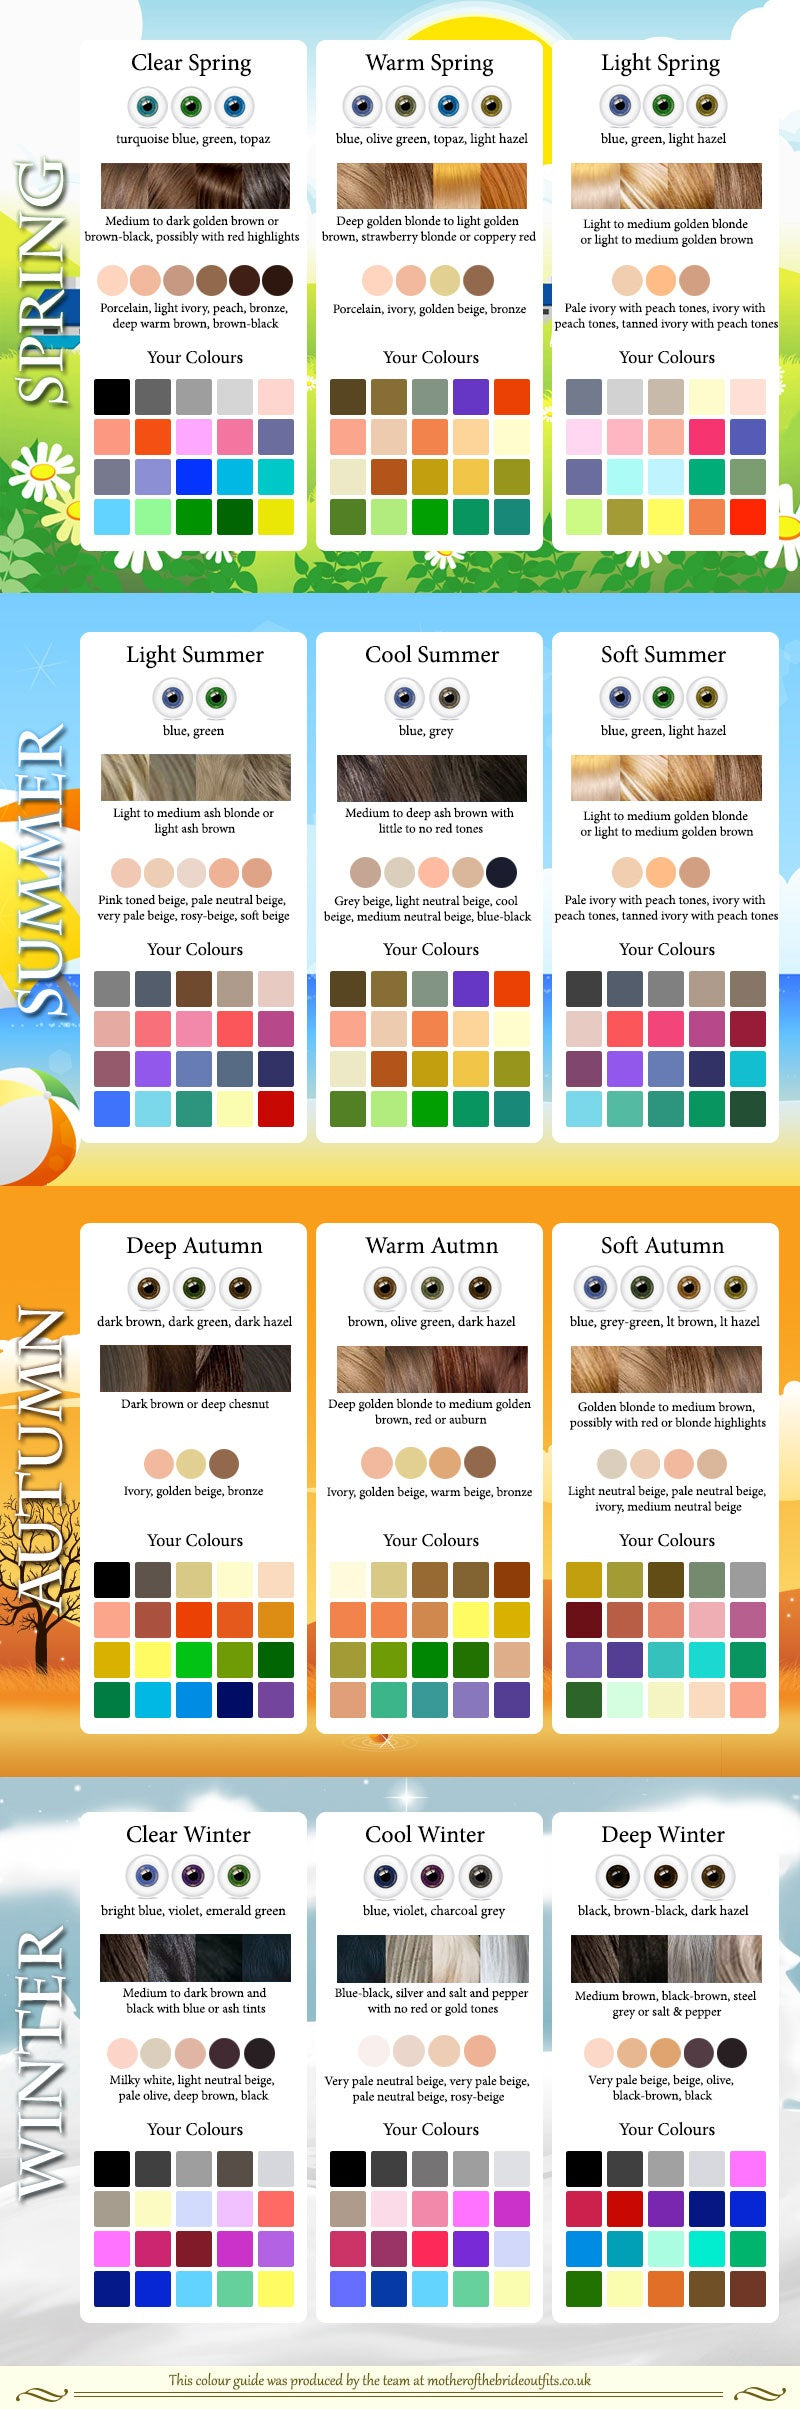 Matching Color Guide